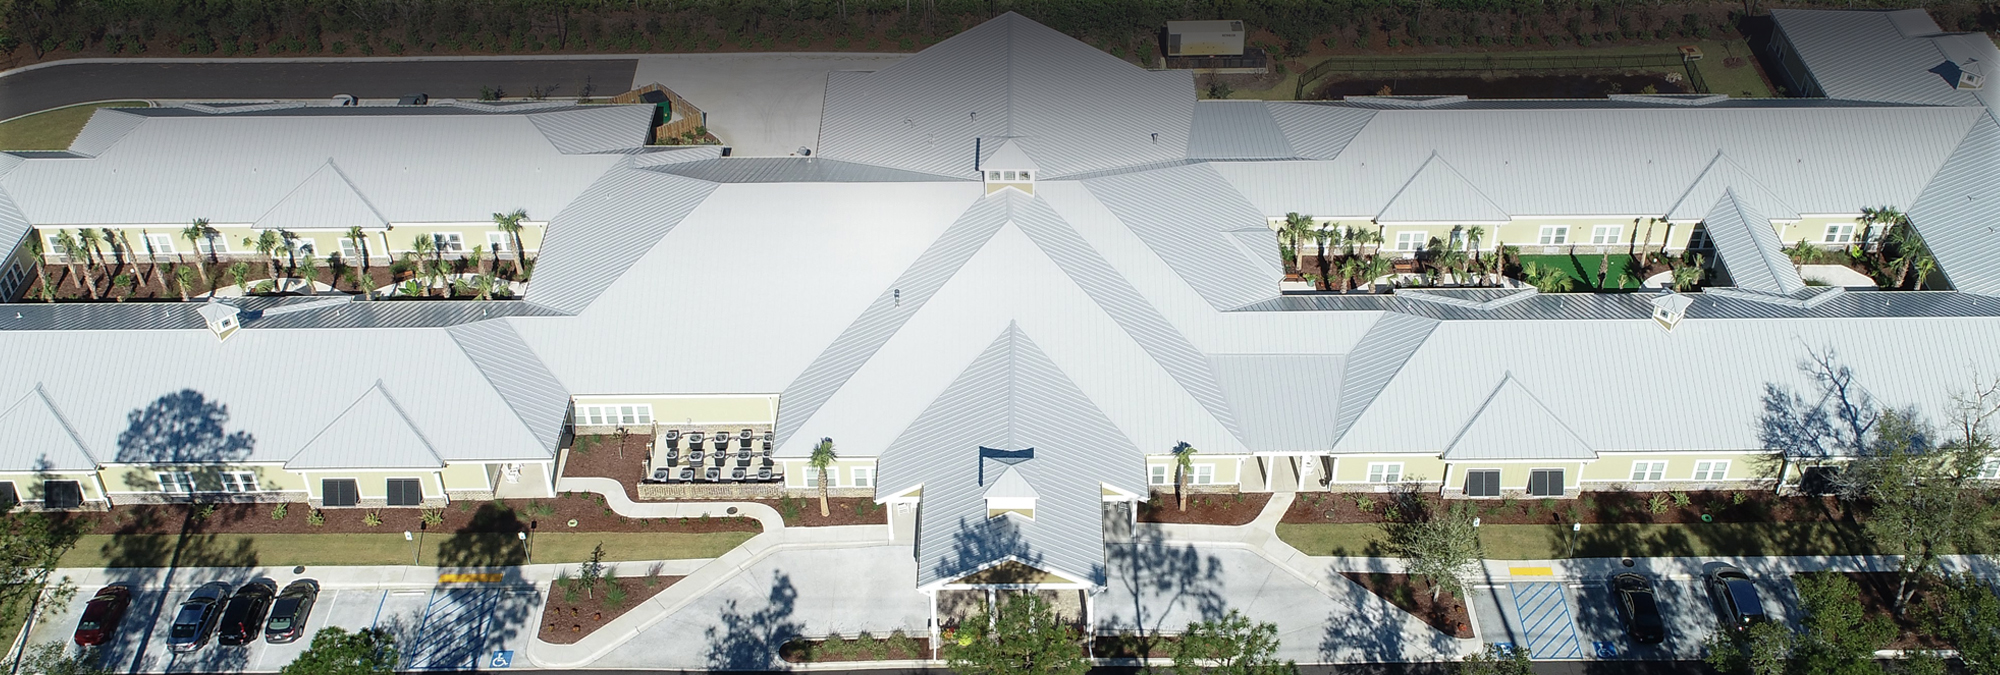 Myrtle Beach Commercial Roofing Company